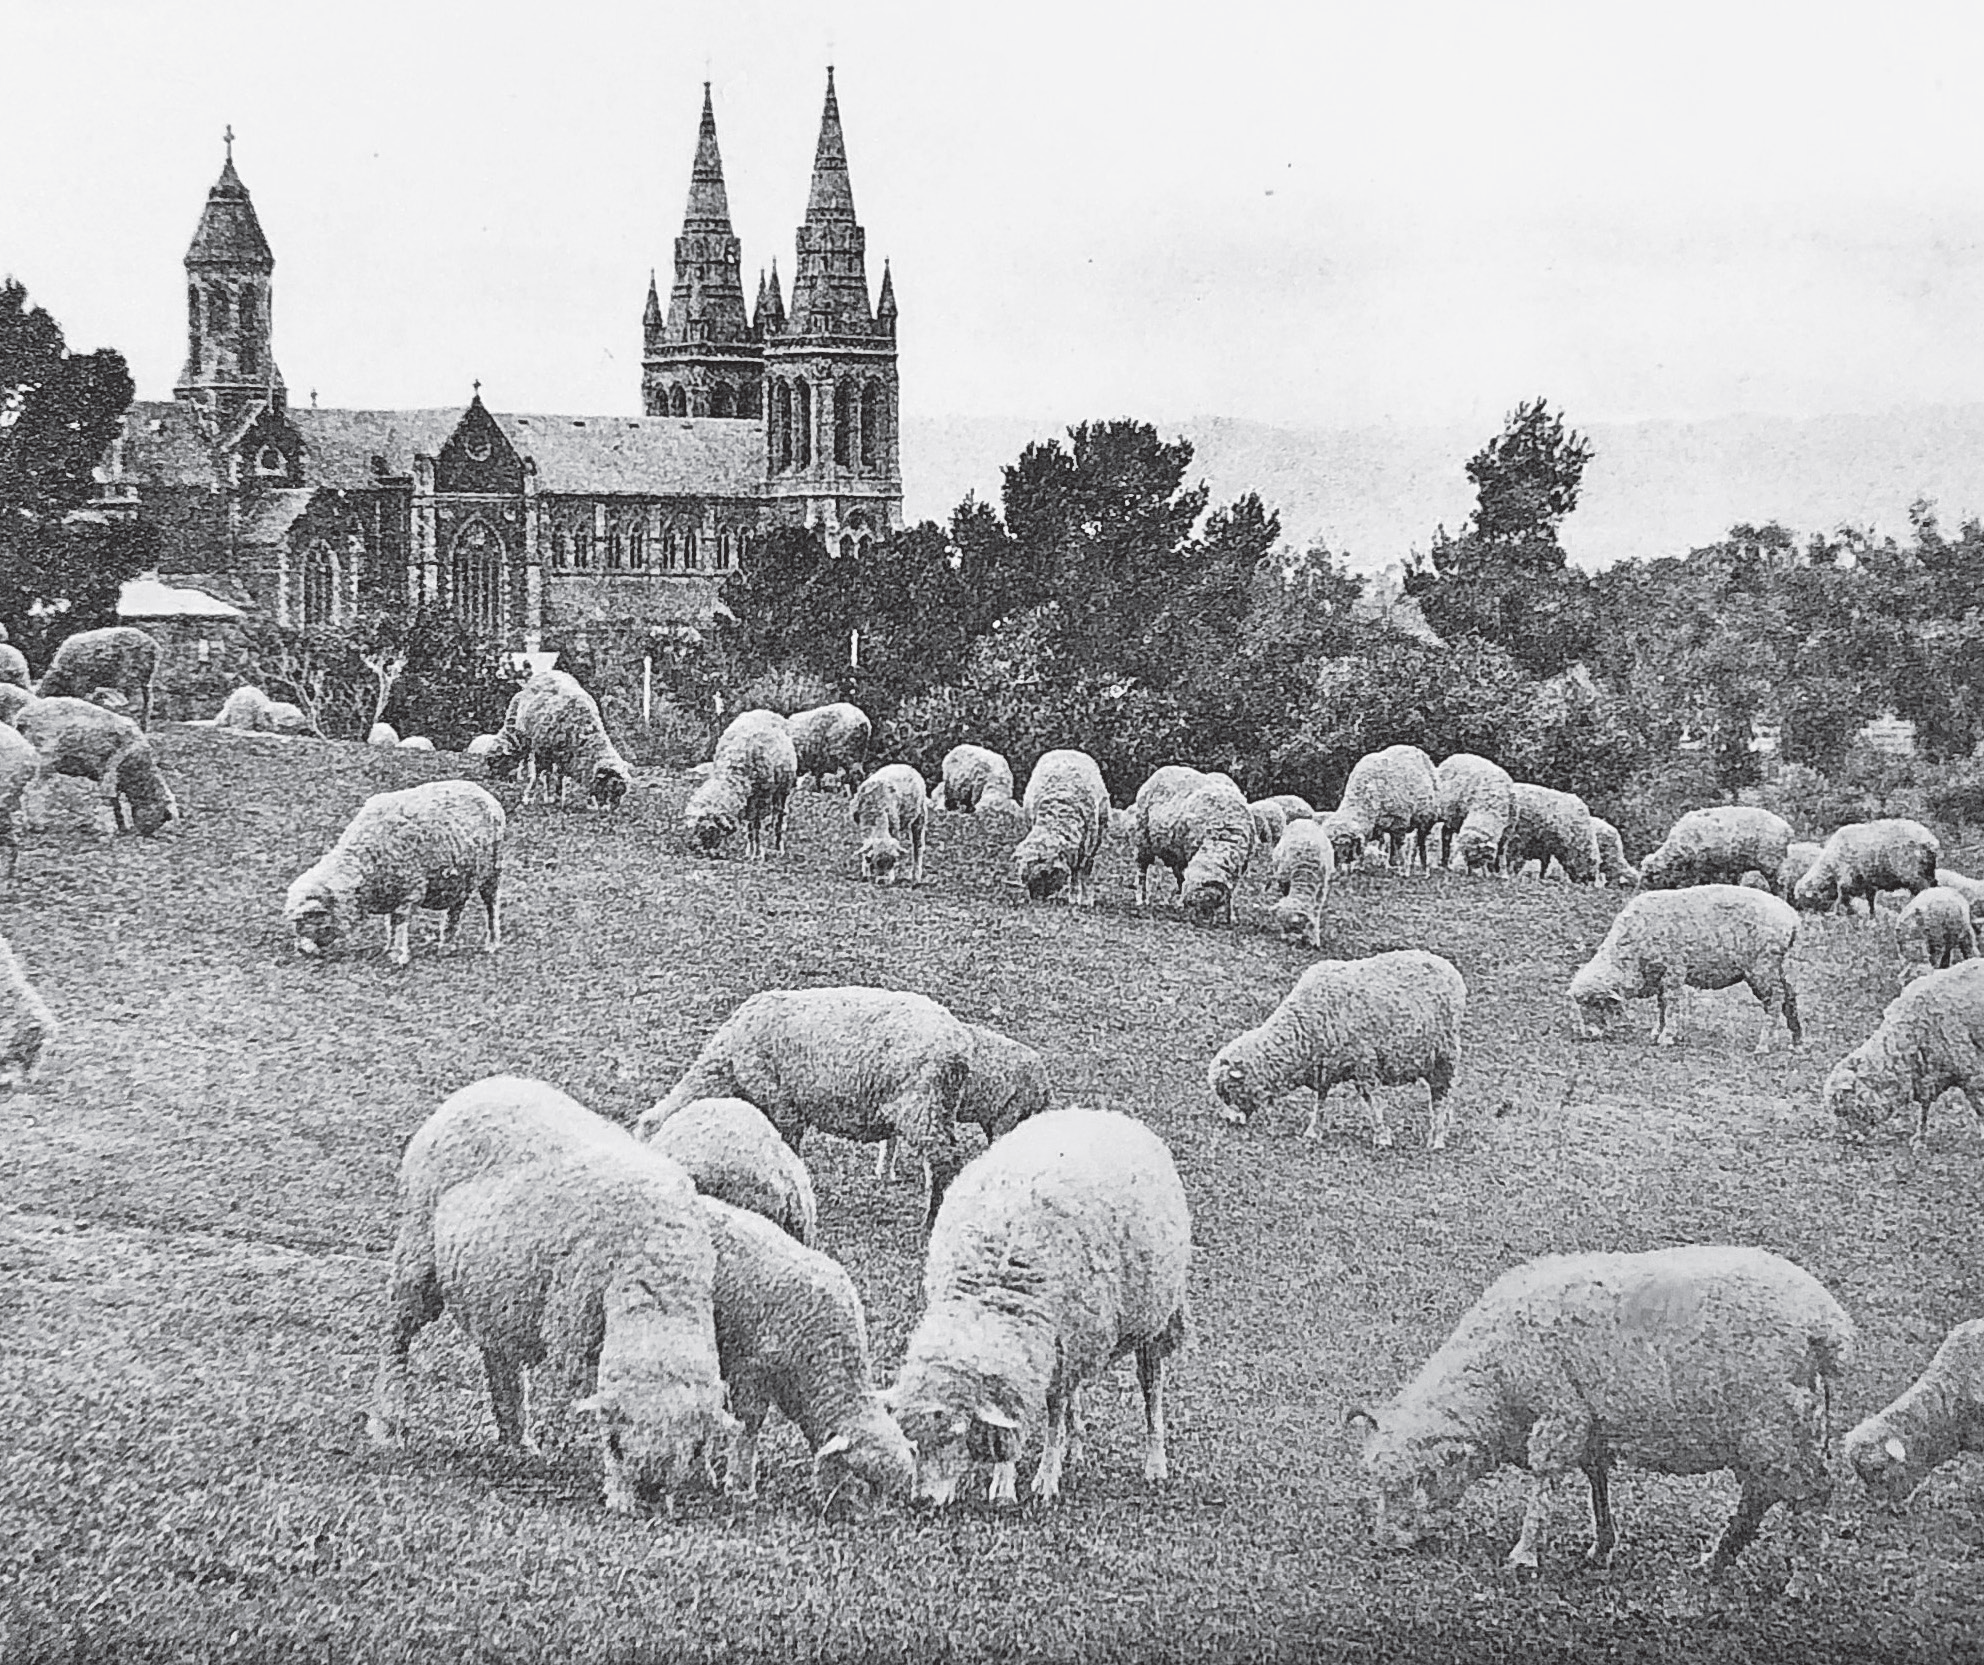 Sheep Grazing in Pennington Tce.png